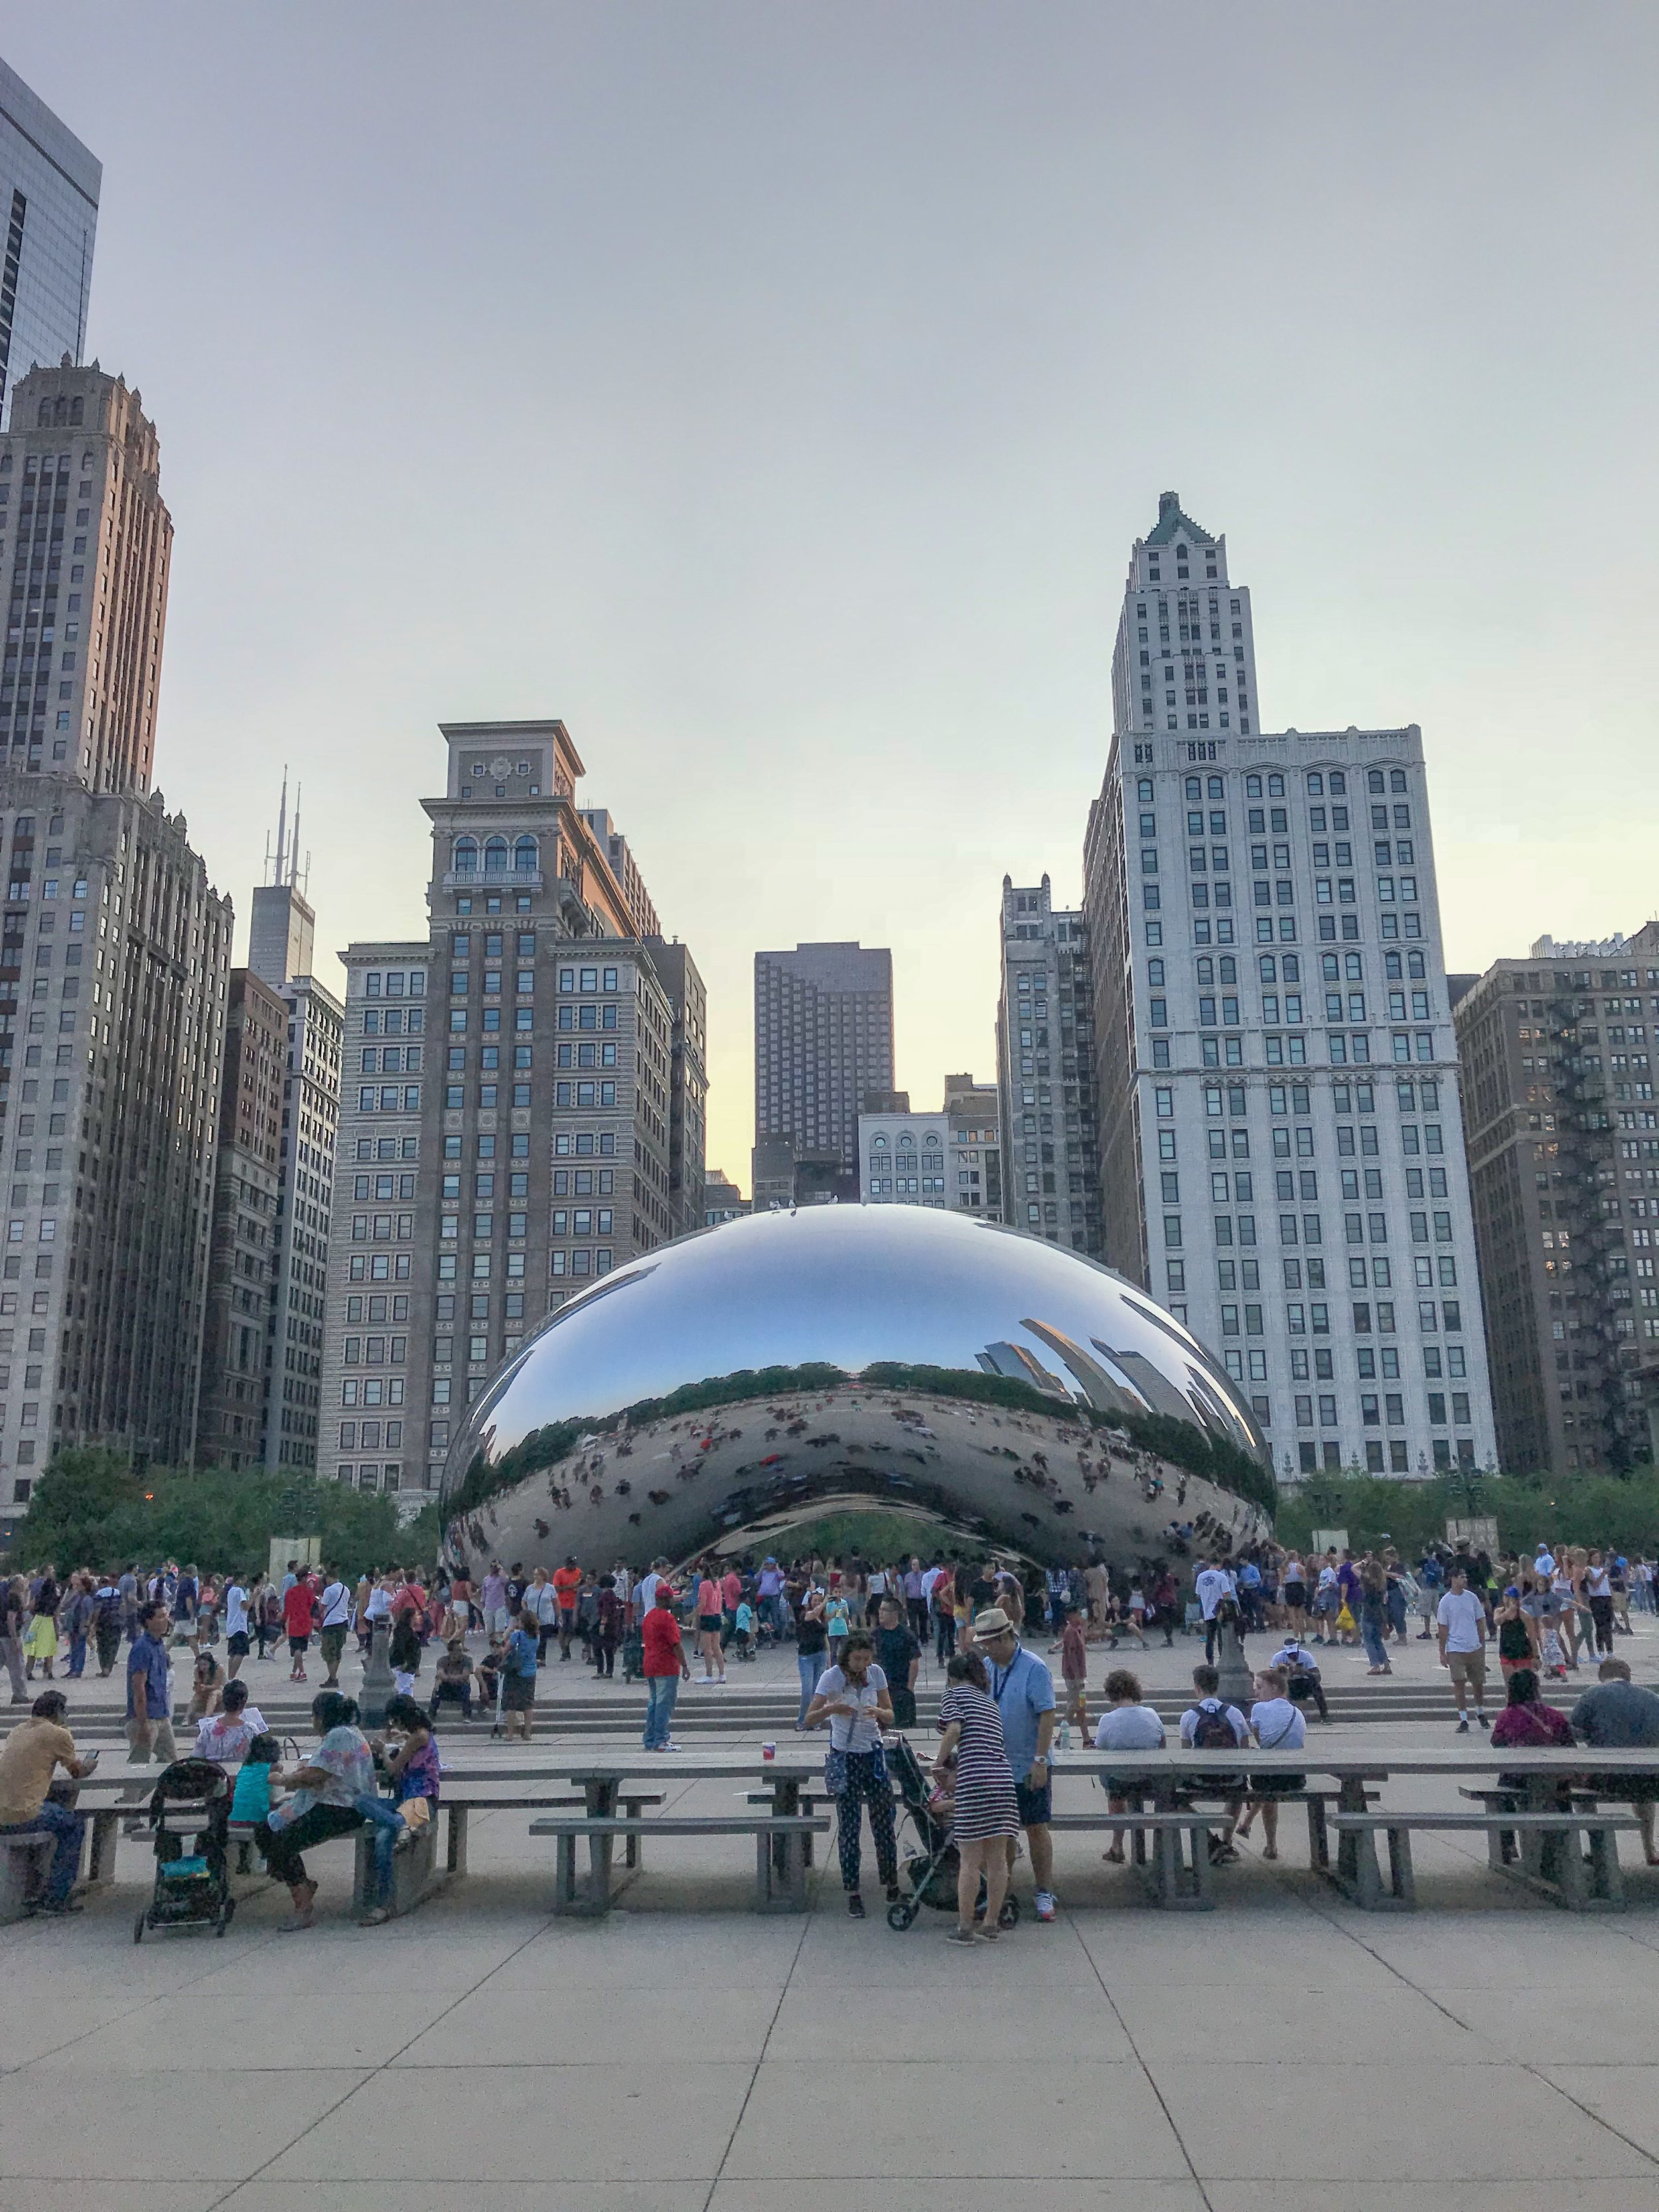 The Chicago Bean is ALWAYS crowded with tourists